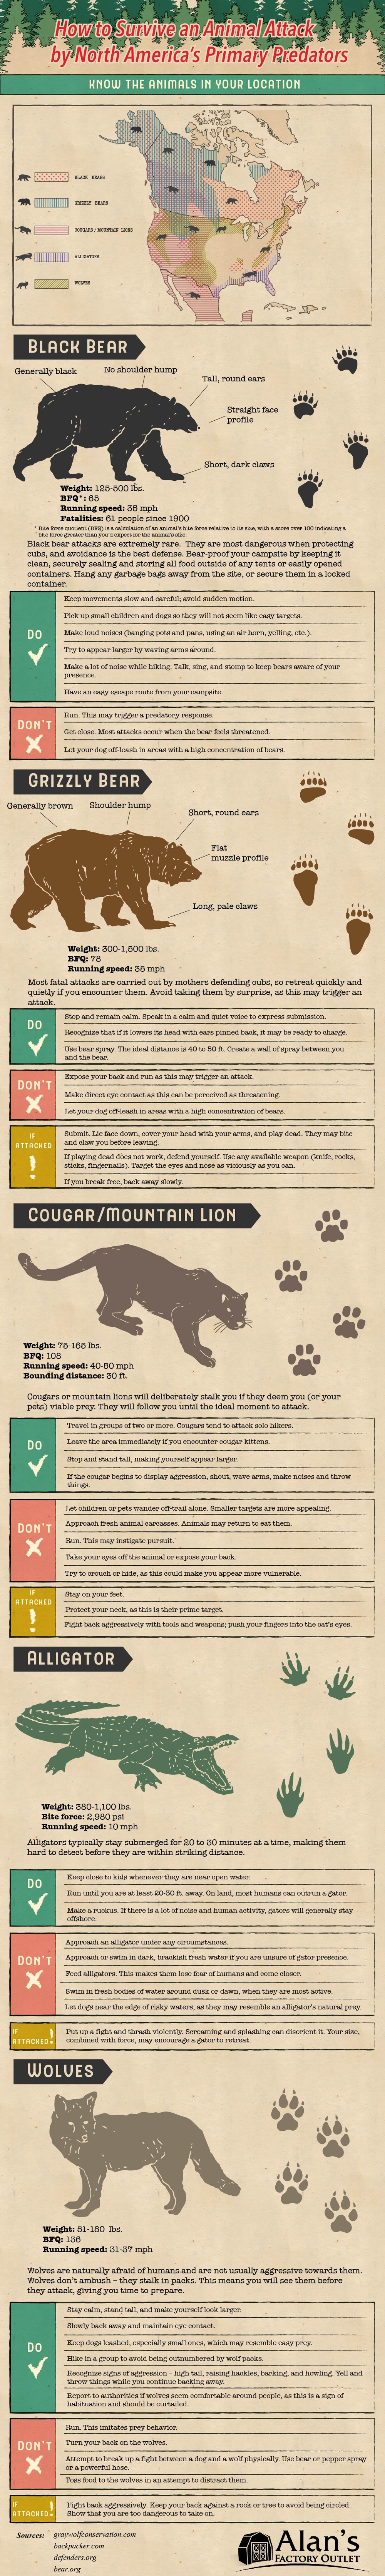 How to Survive an Animal Attack by North America's Primary Predators